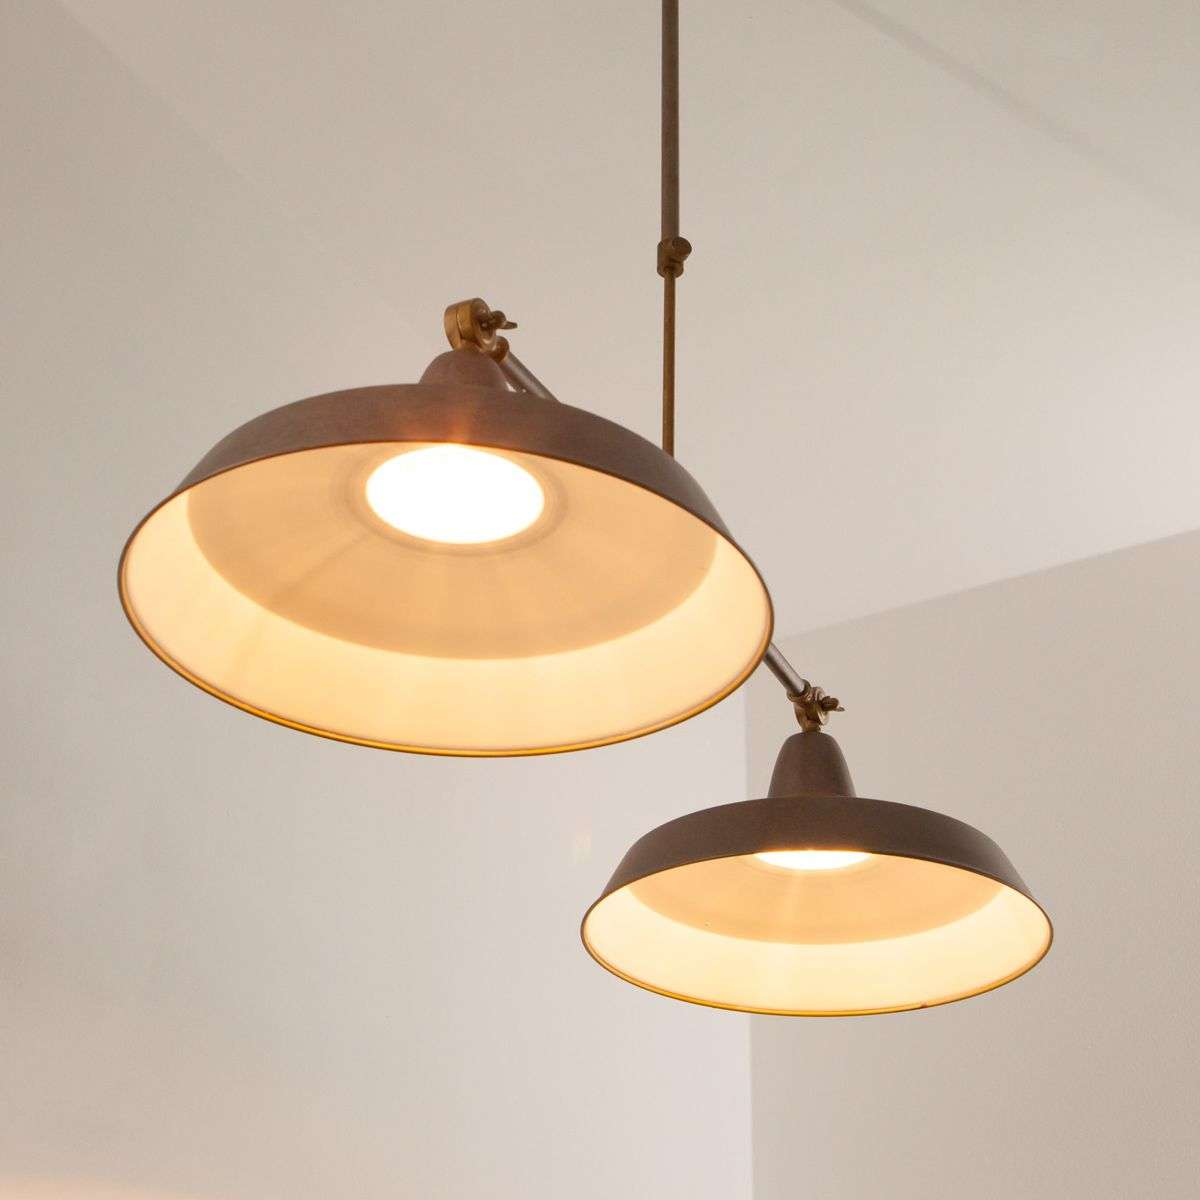 Retro hanglamp Vintage in roestbruin, 2-lichts-6026479-33